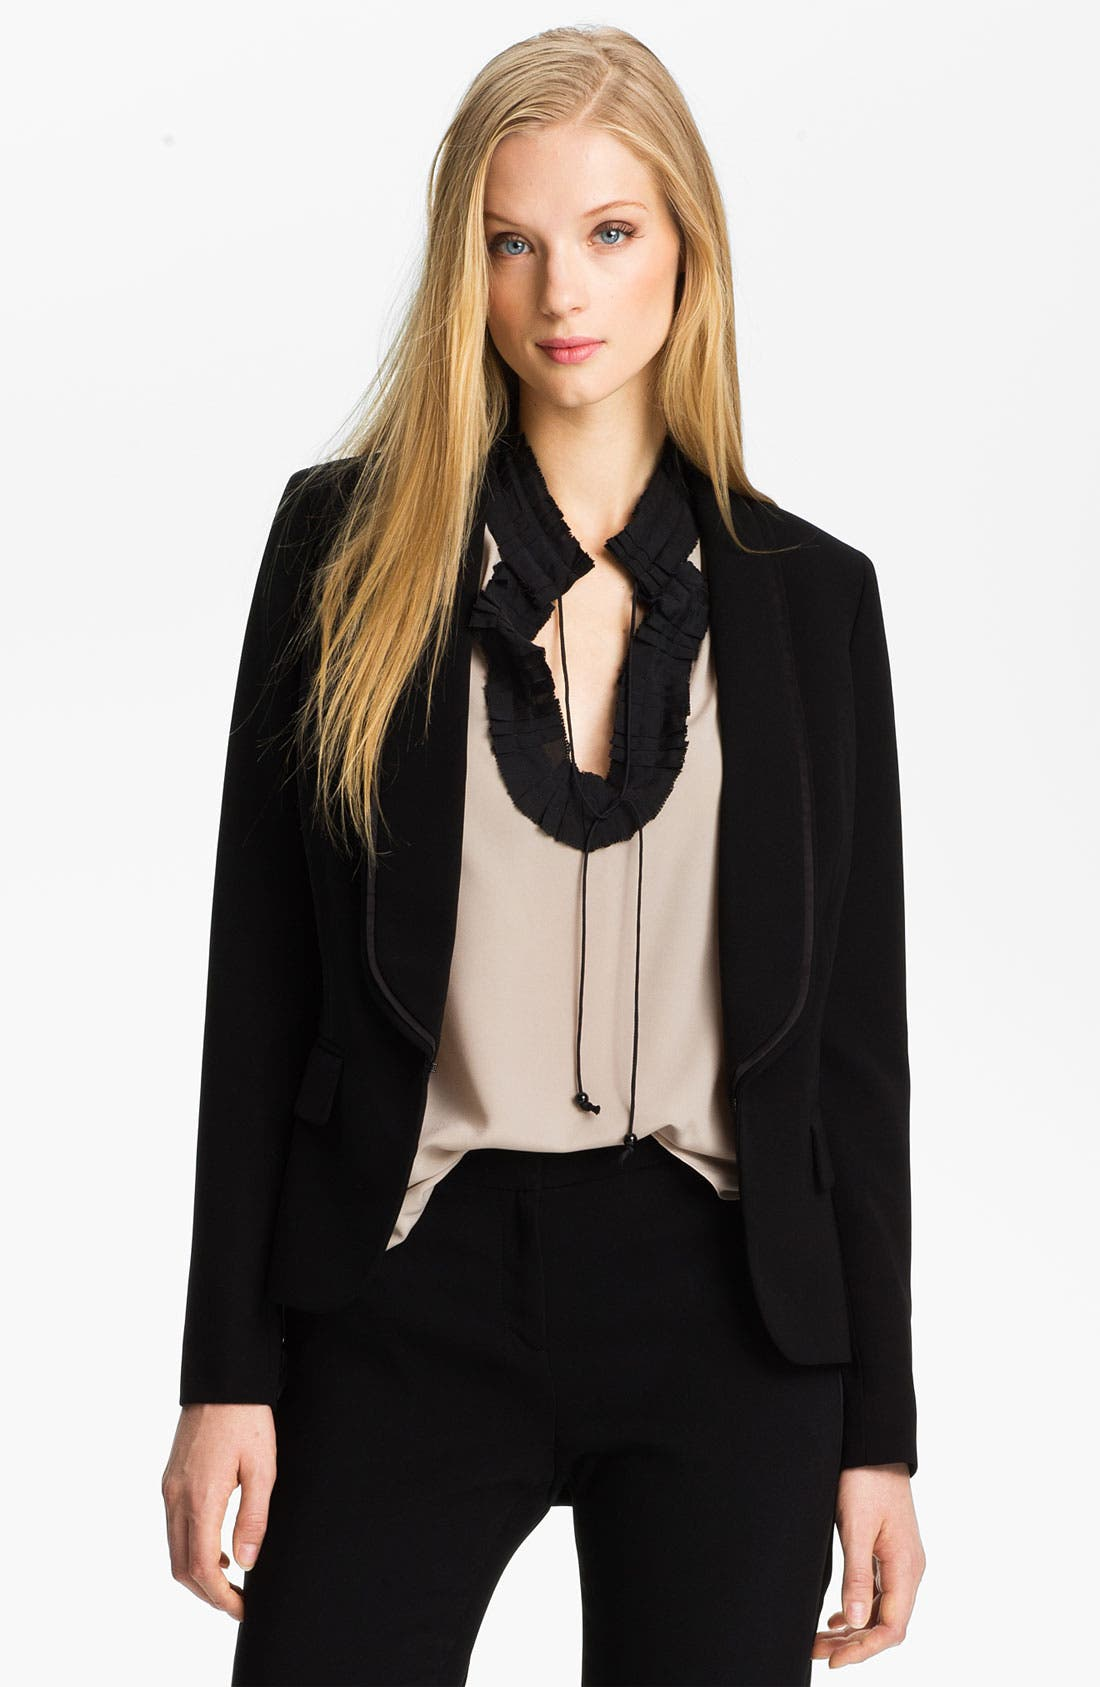 Alternate Image 1 Selected - Anne Klein Tuxedo Jacket (Petite)